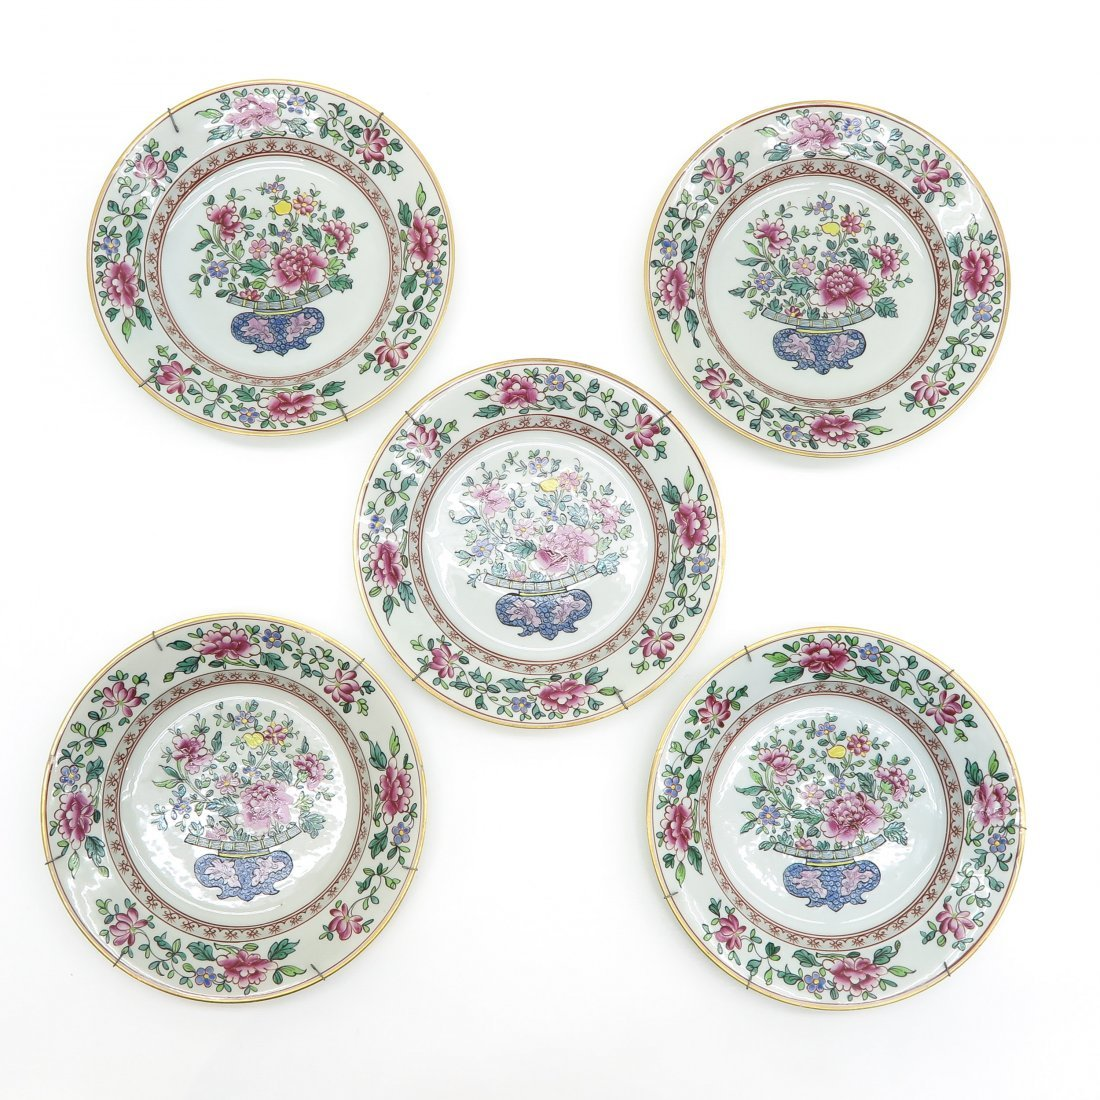 Lot of 5 18th Century Famille Rose Decor Plates